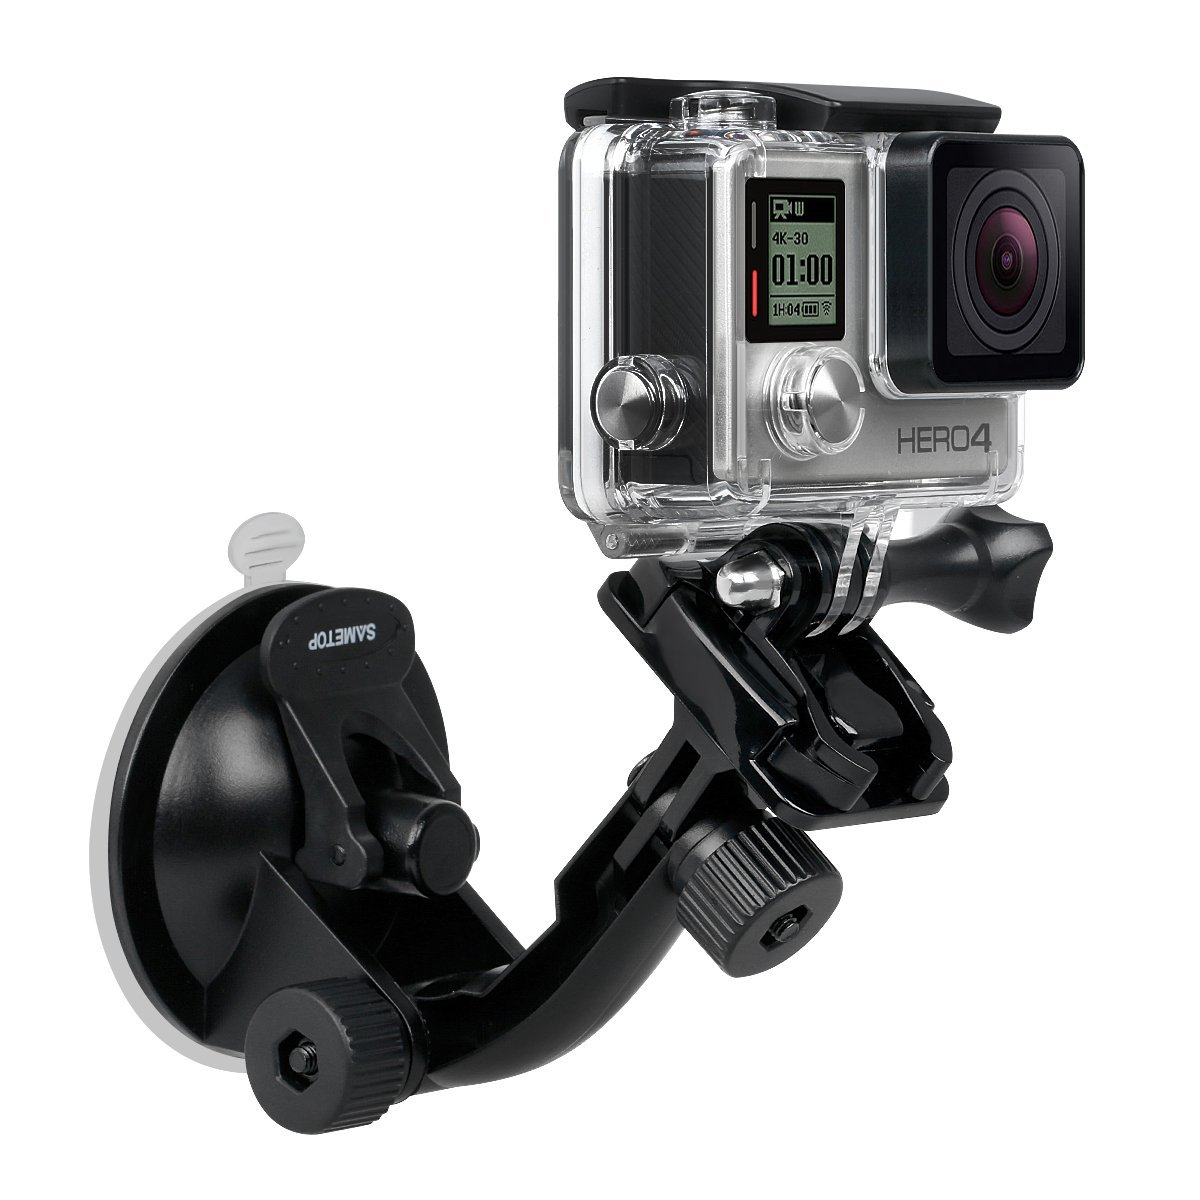 Top 10 Best Car Suction Mounts for GoPro Hero Cameras 2018